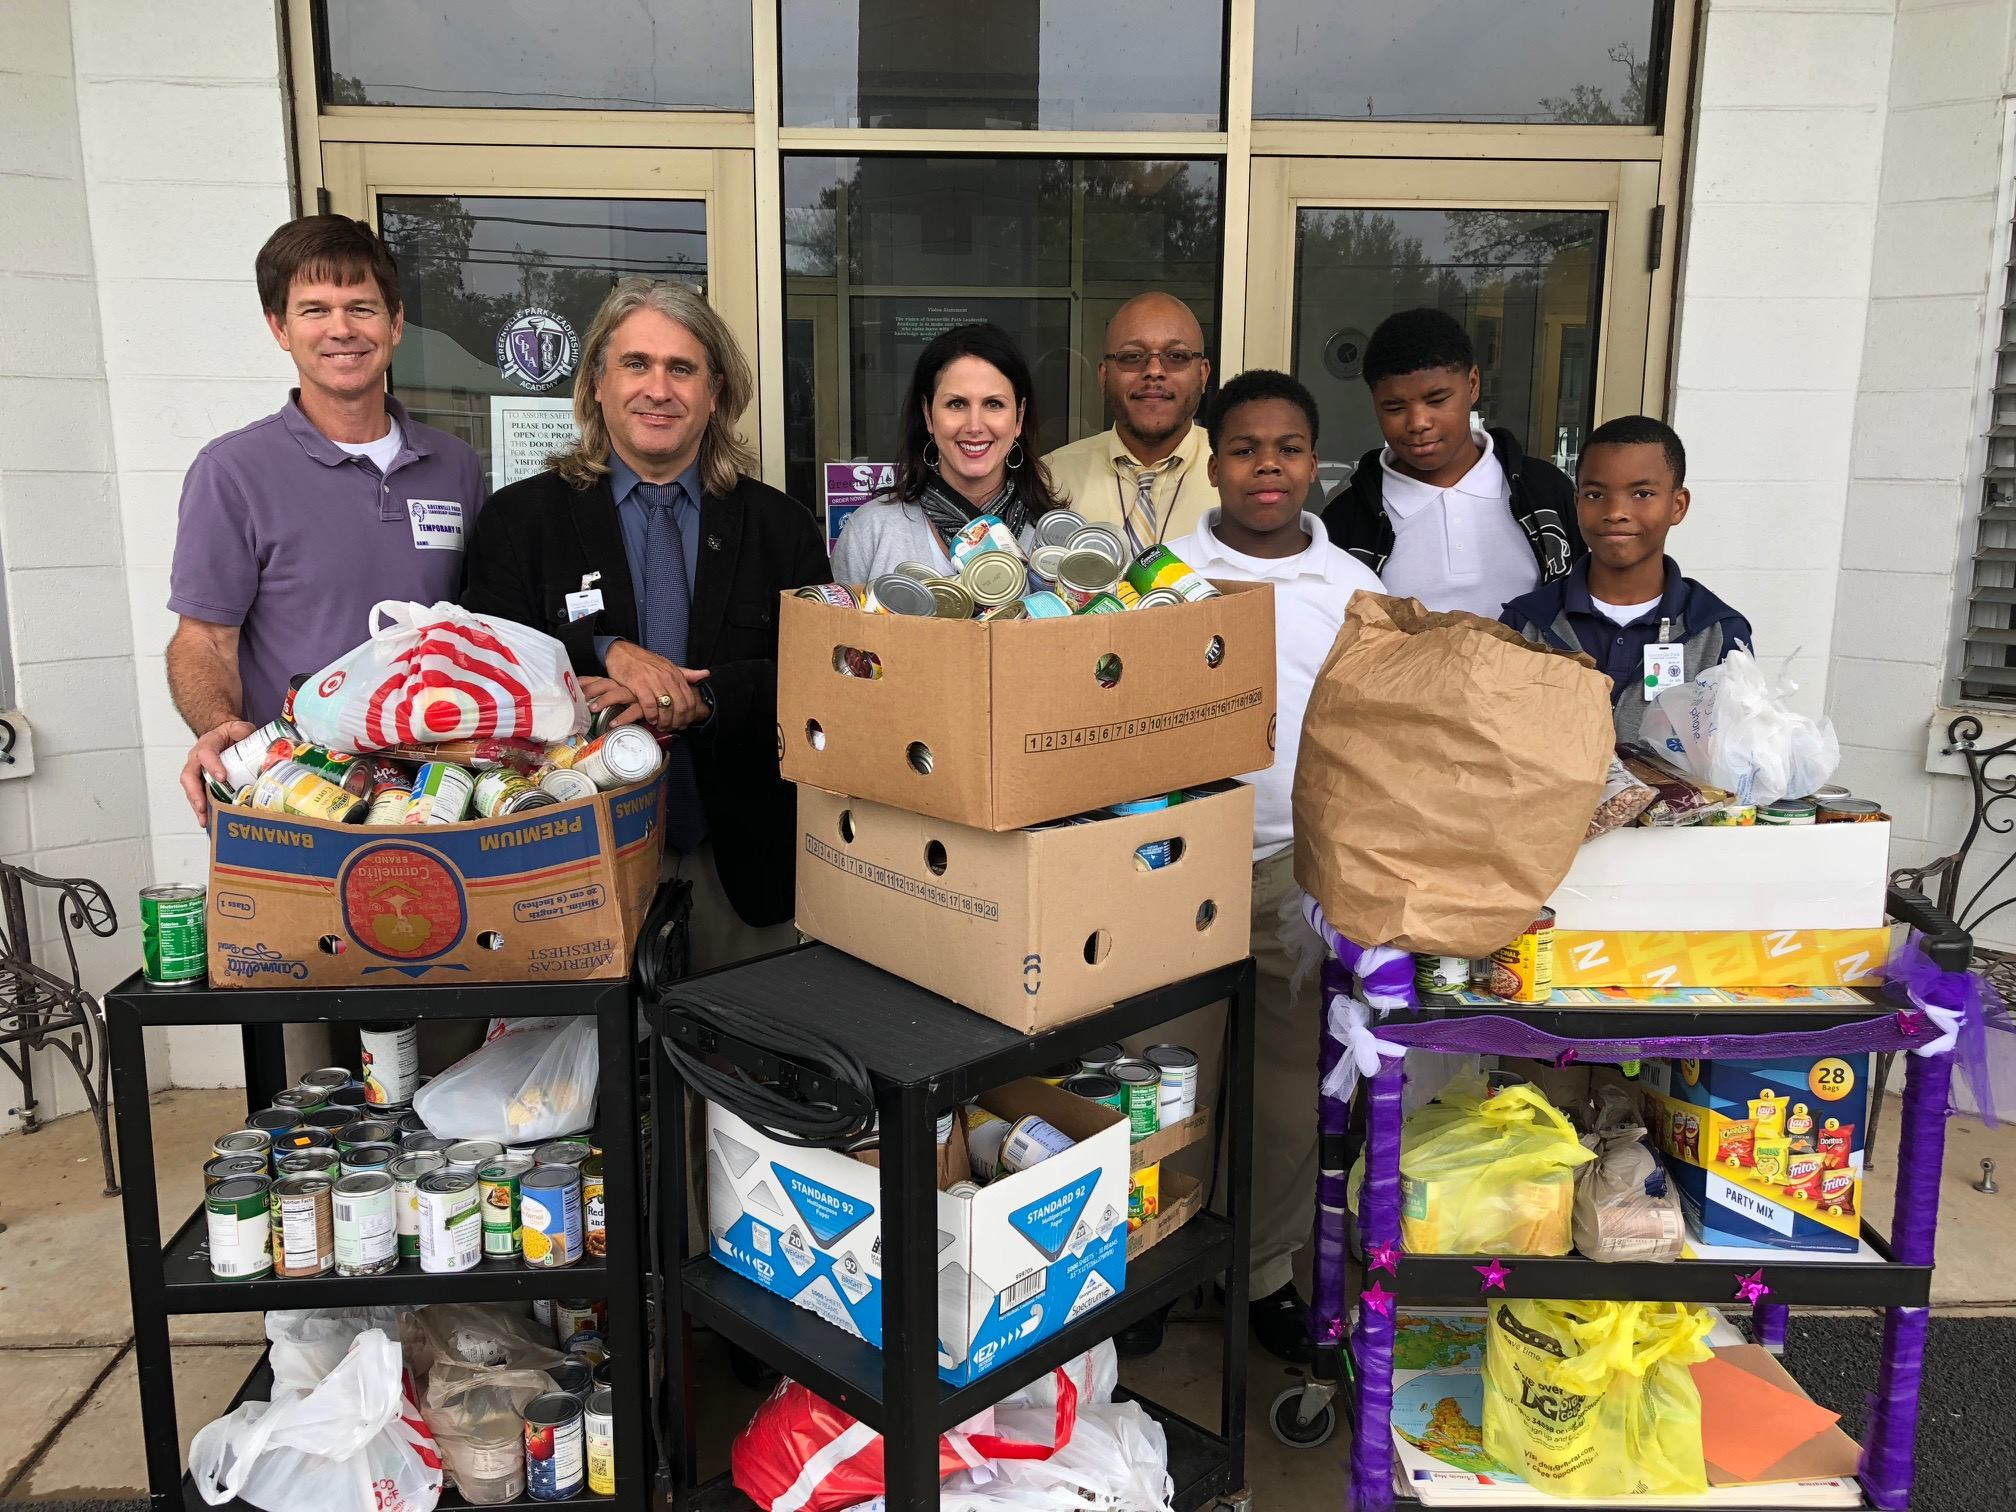 Donate Food - Please drop off food items at Our Daily Bread on Mondays, Tuesdays, or Thursdays from 8 a.m. until 2 p.m.